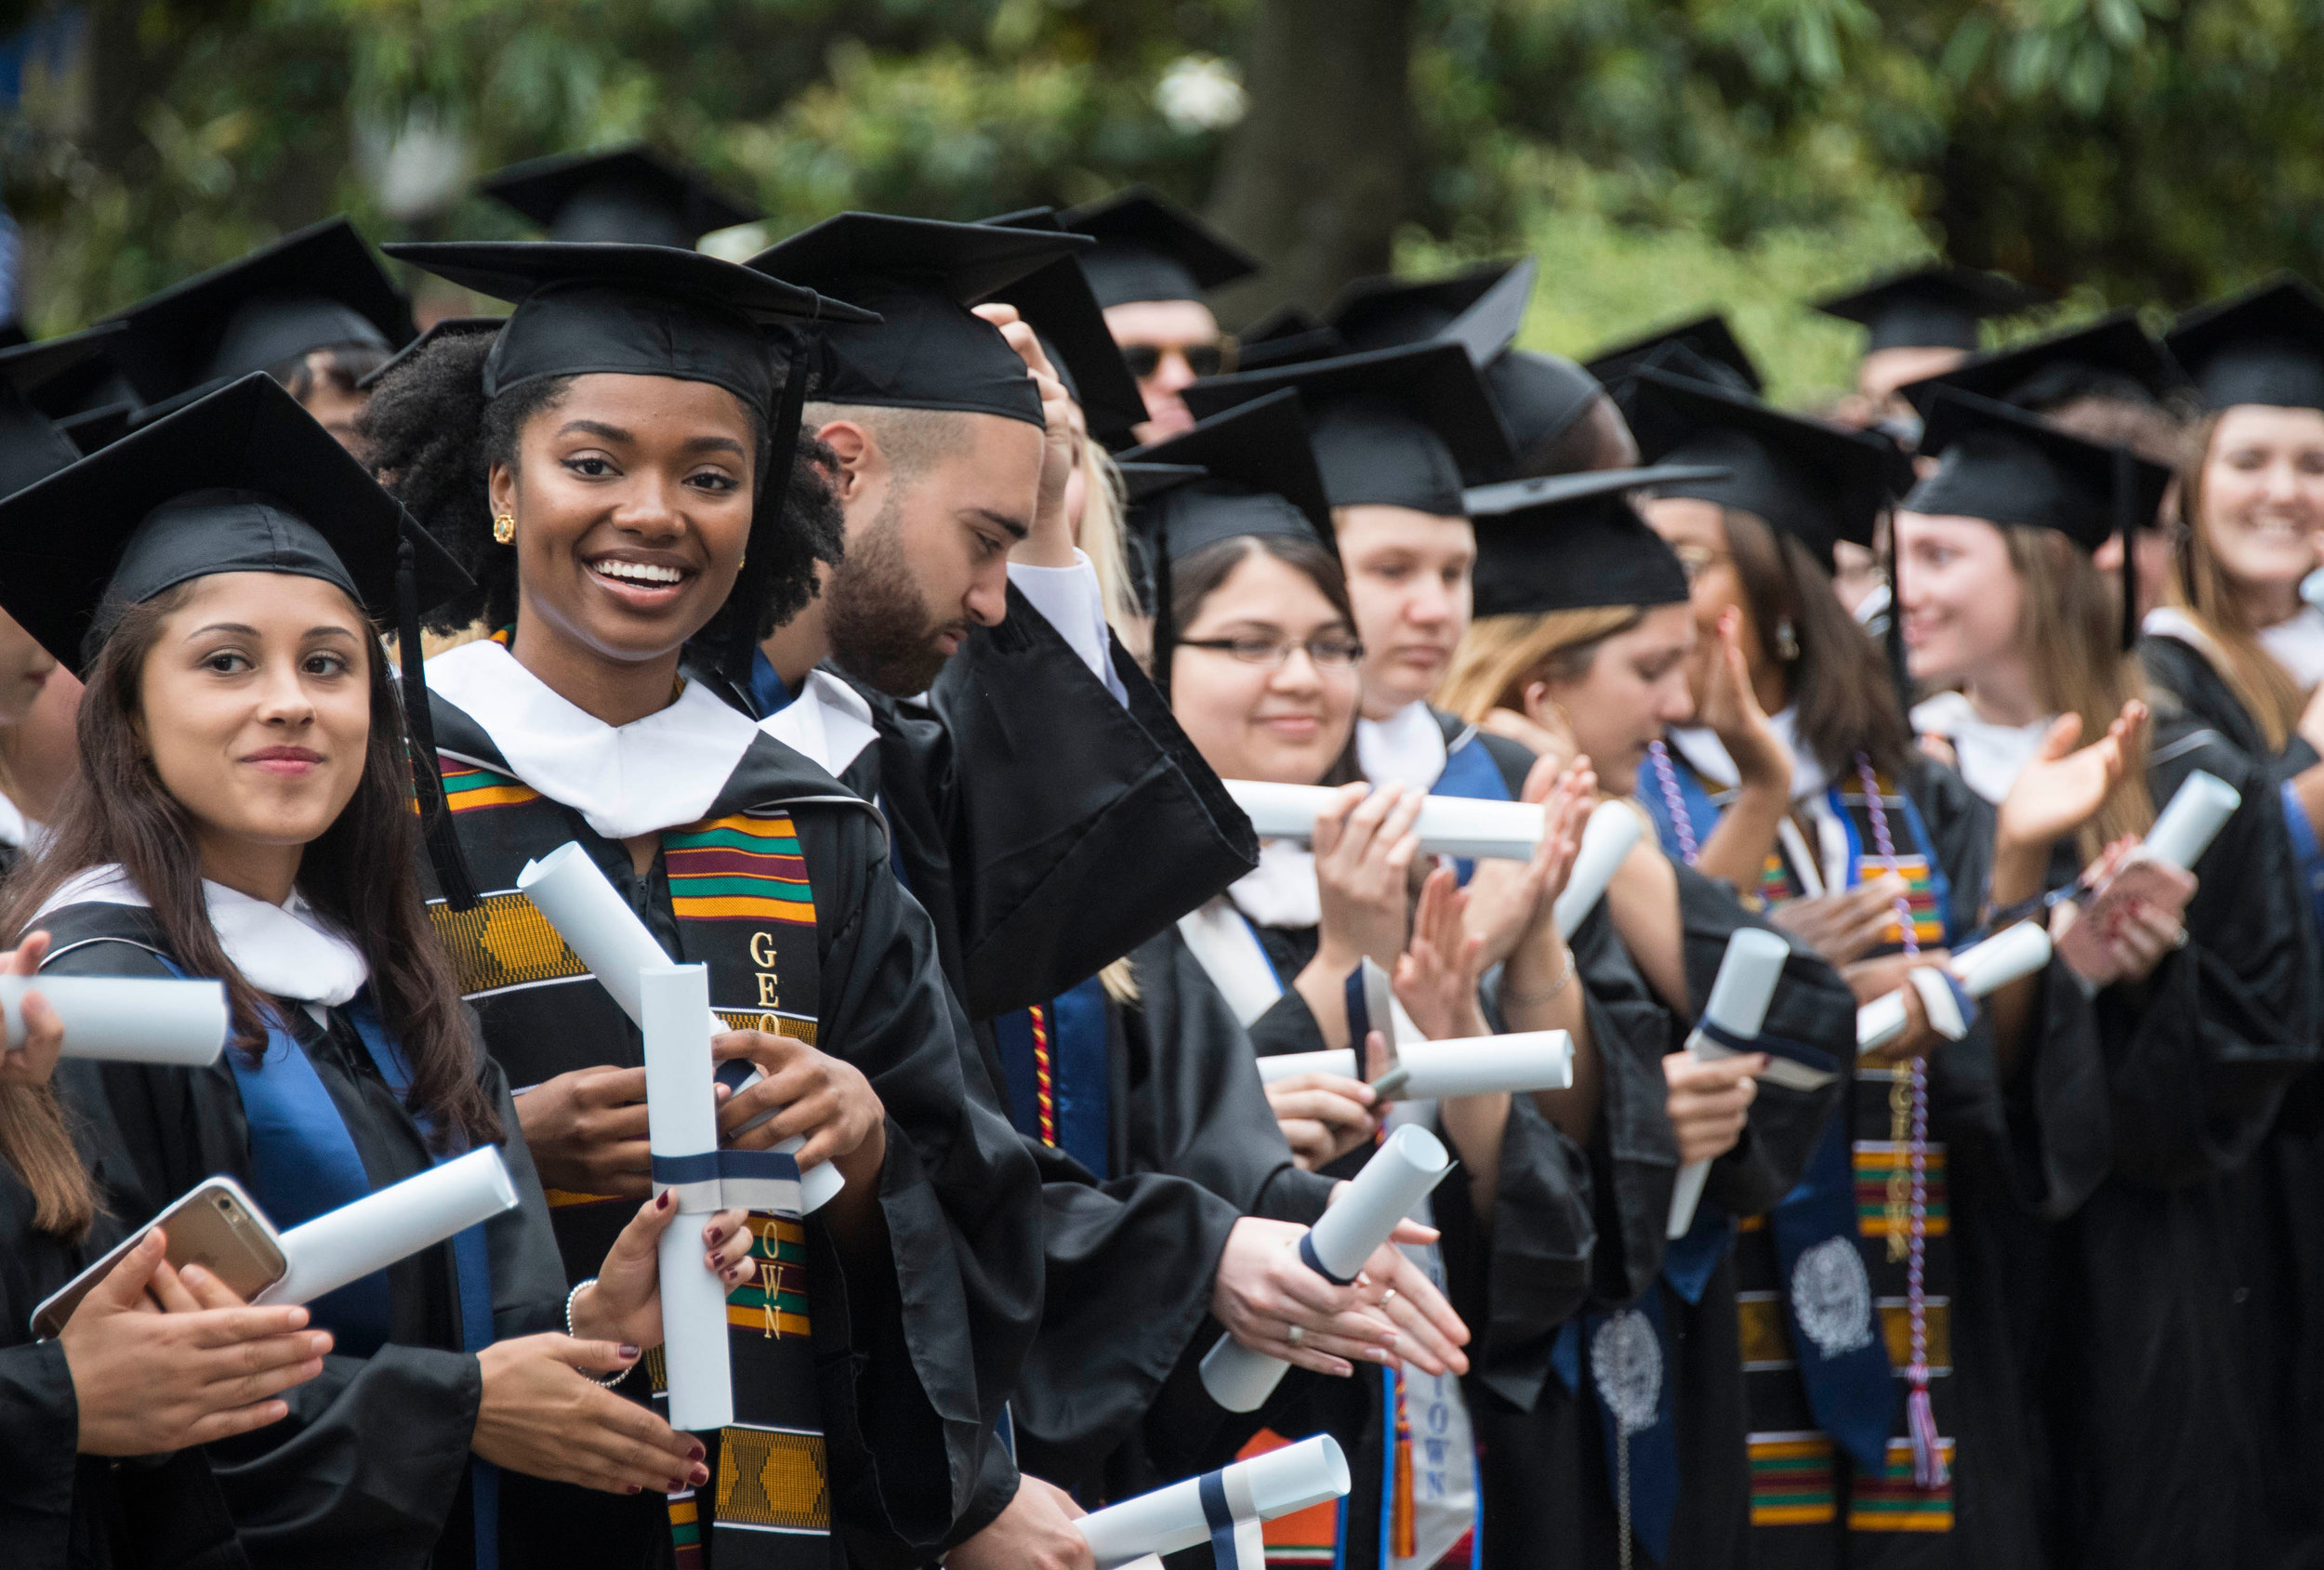 Graduates appalud as they prepare to walk the stage at commencement